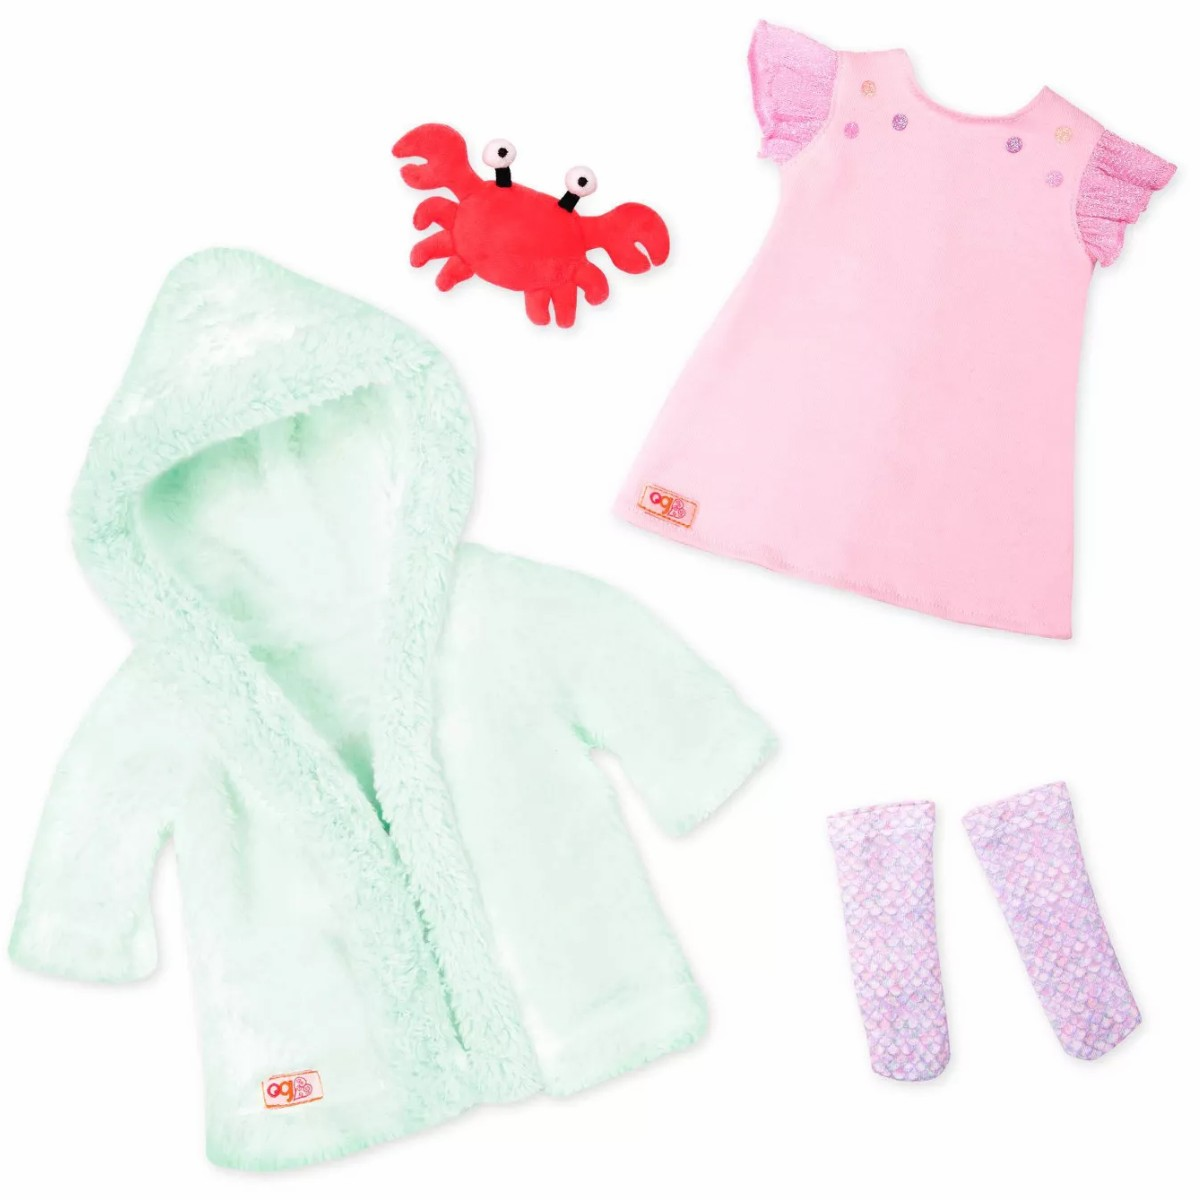 Our Generation - Deluxe outfit - Seaside Dreaming (730398)